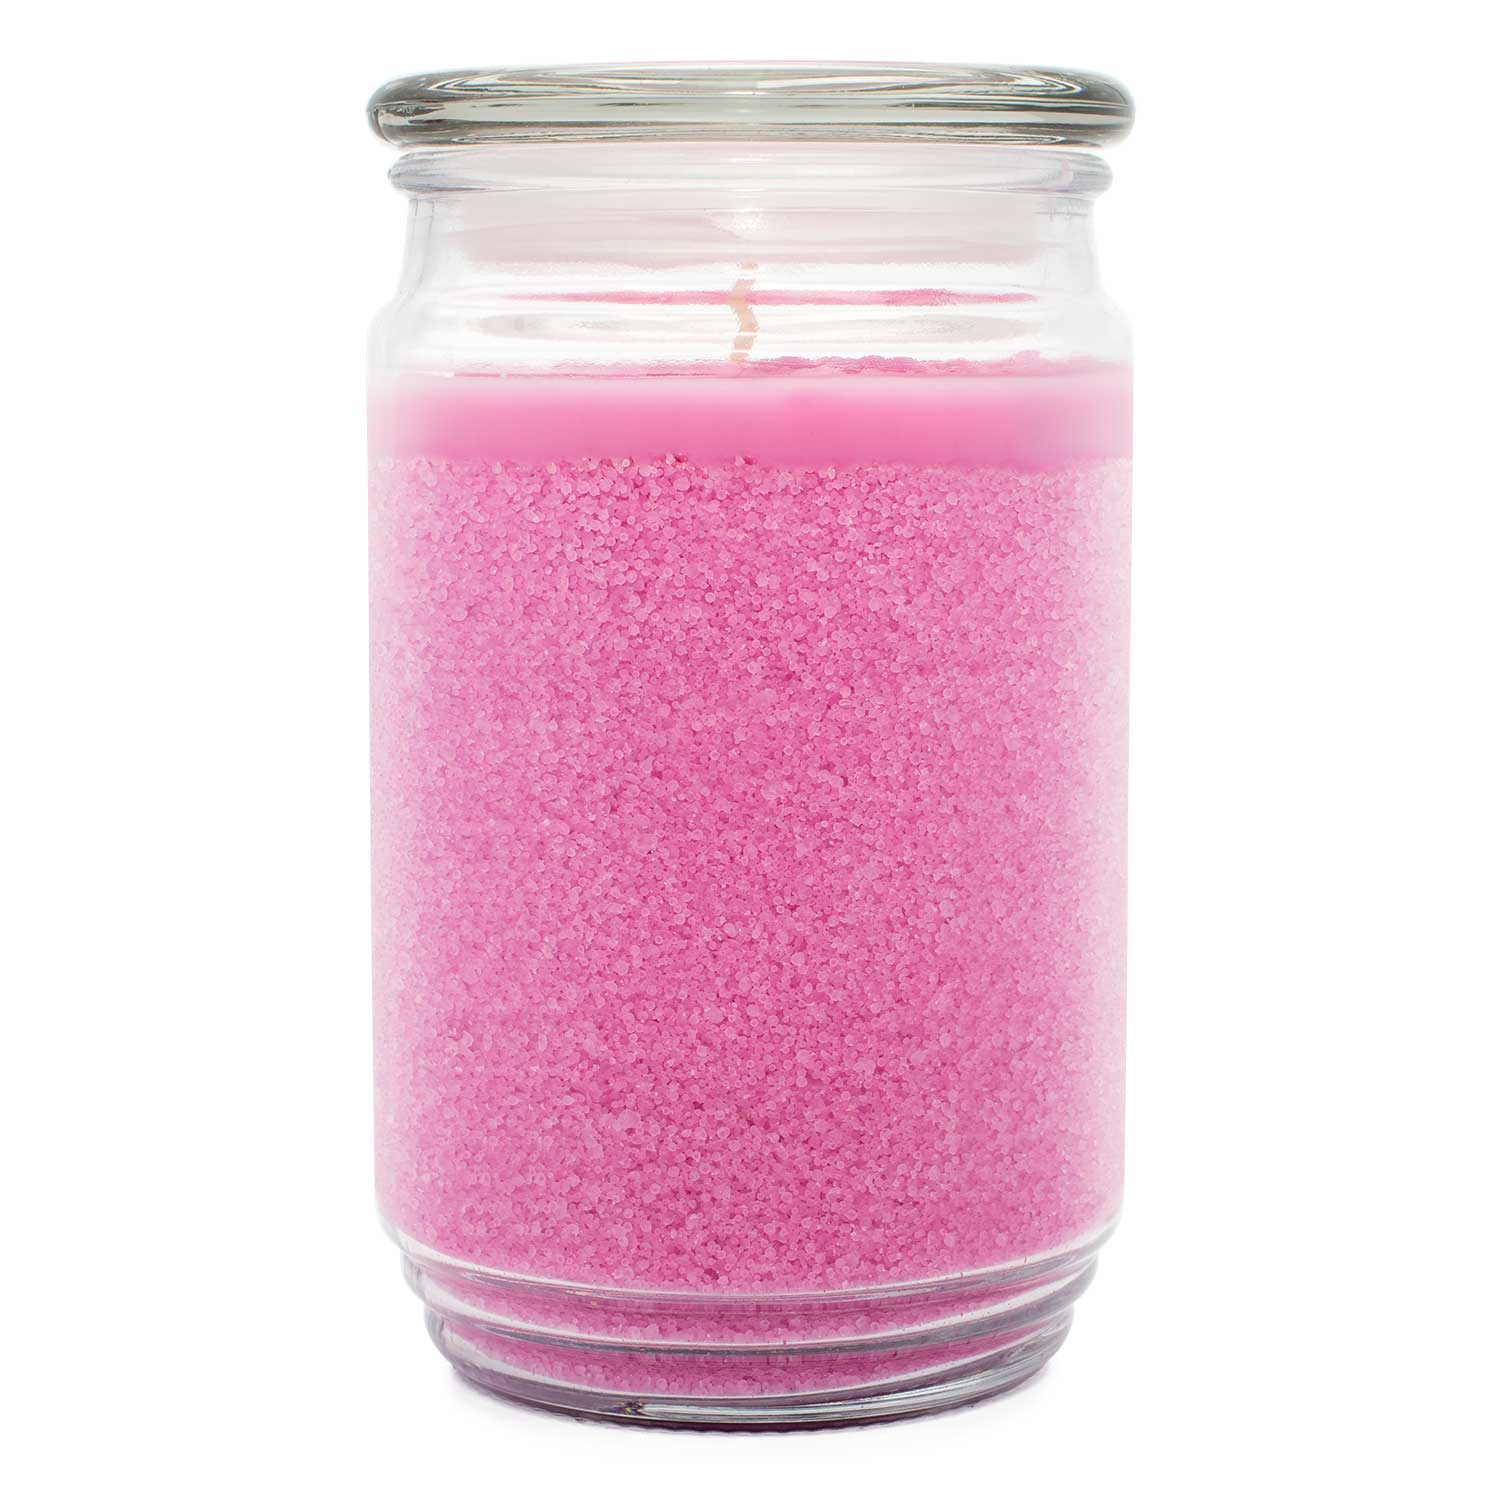 Aromabeads Romance Scented Candle